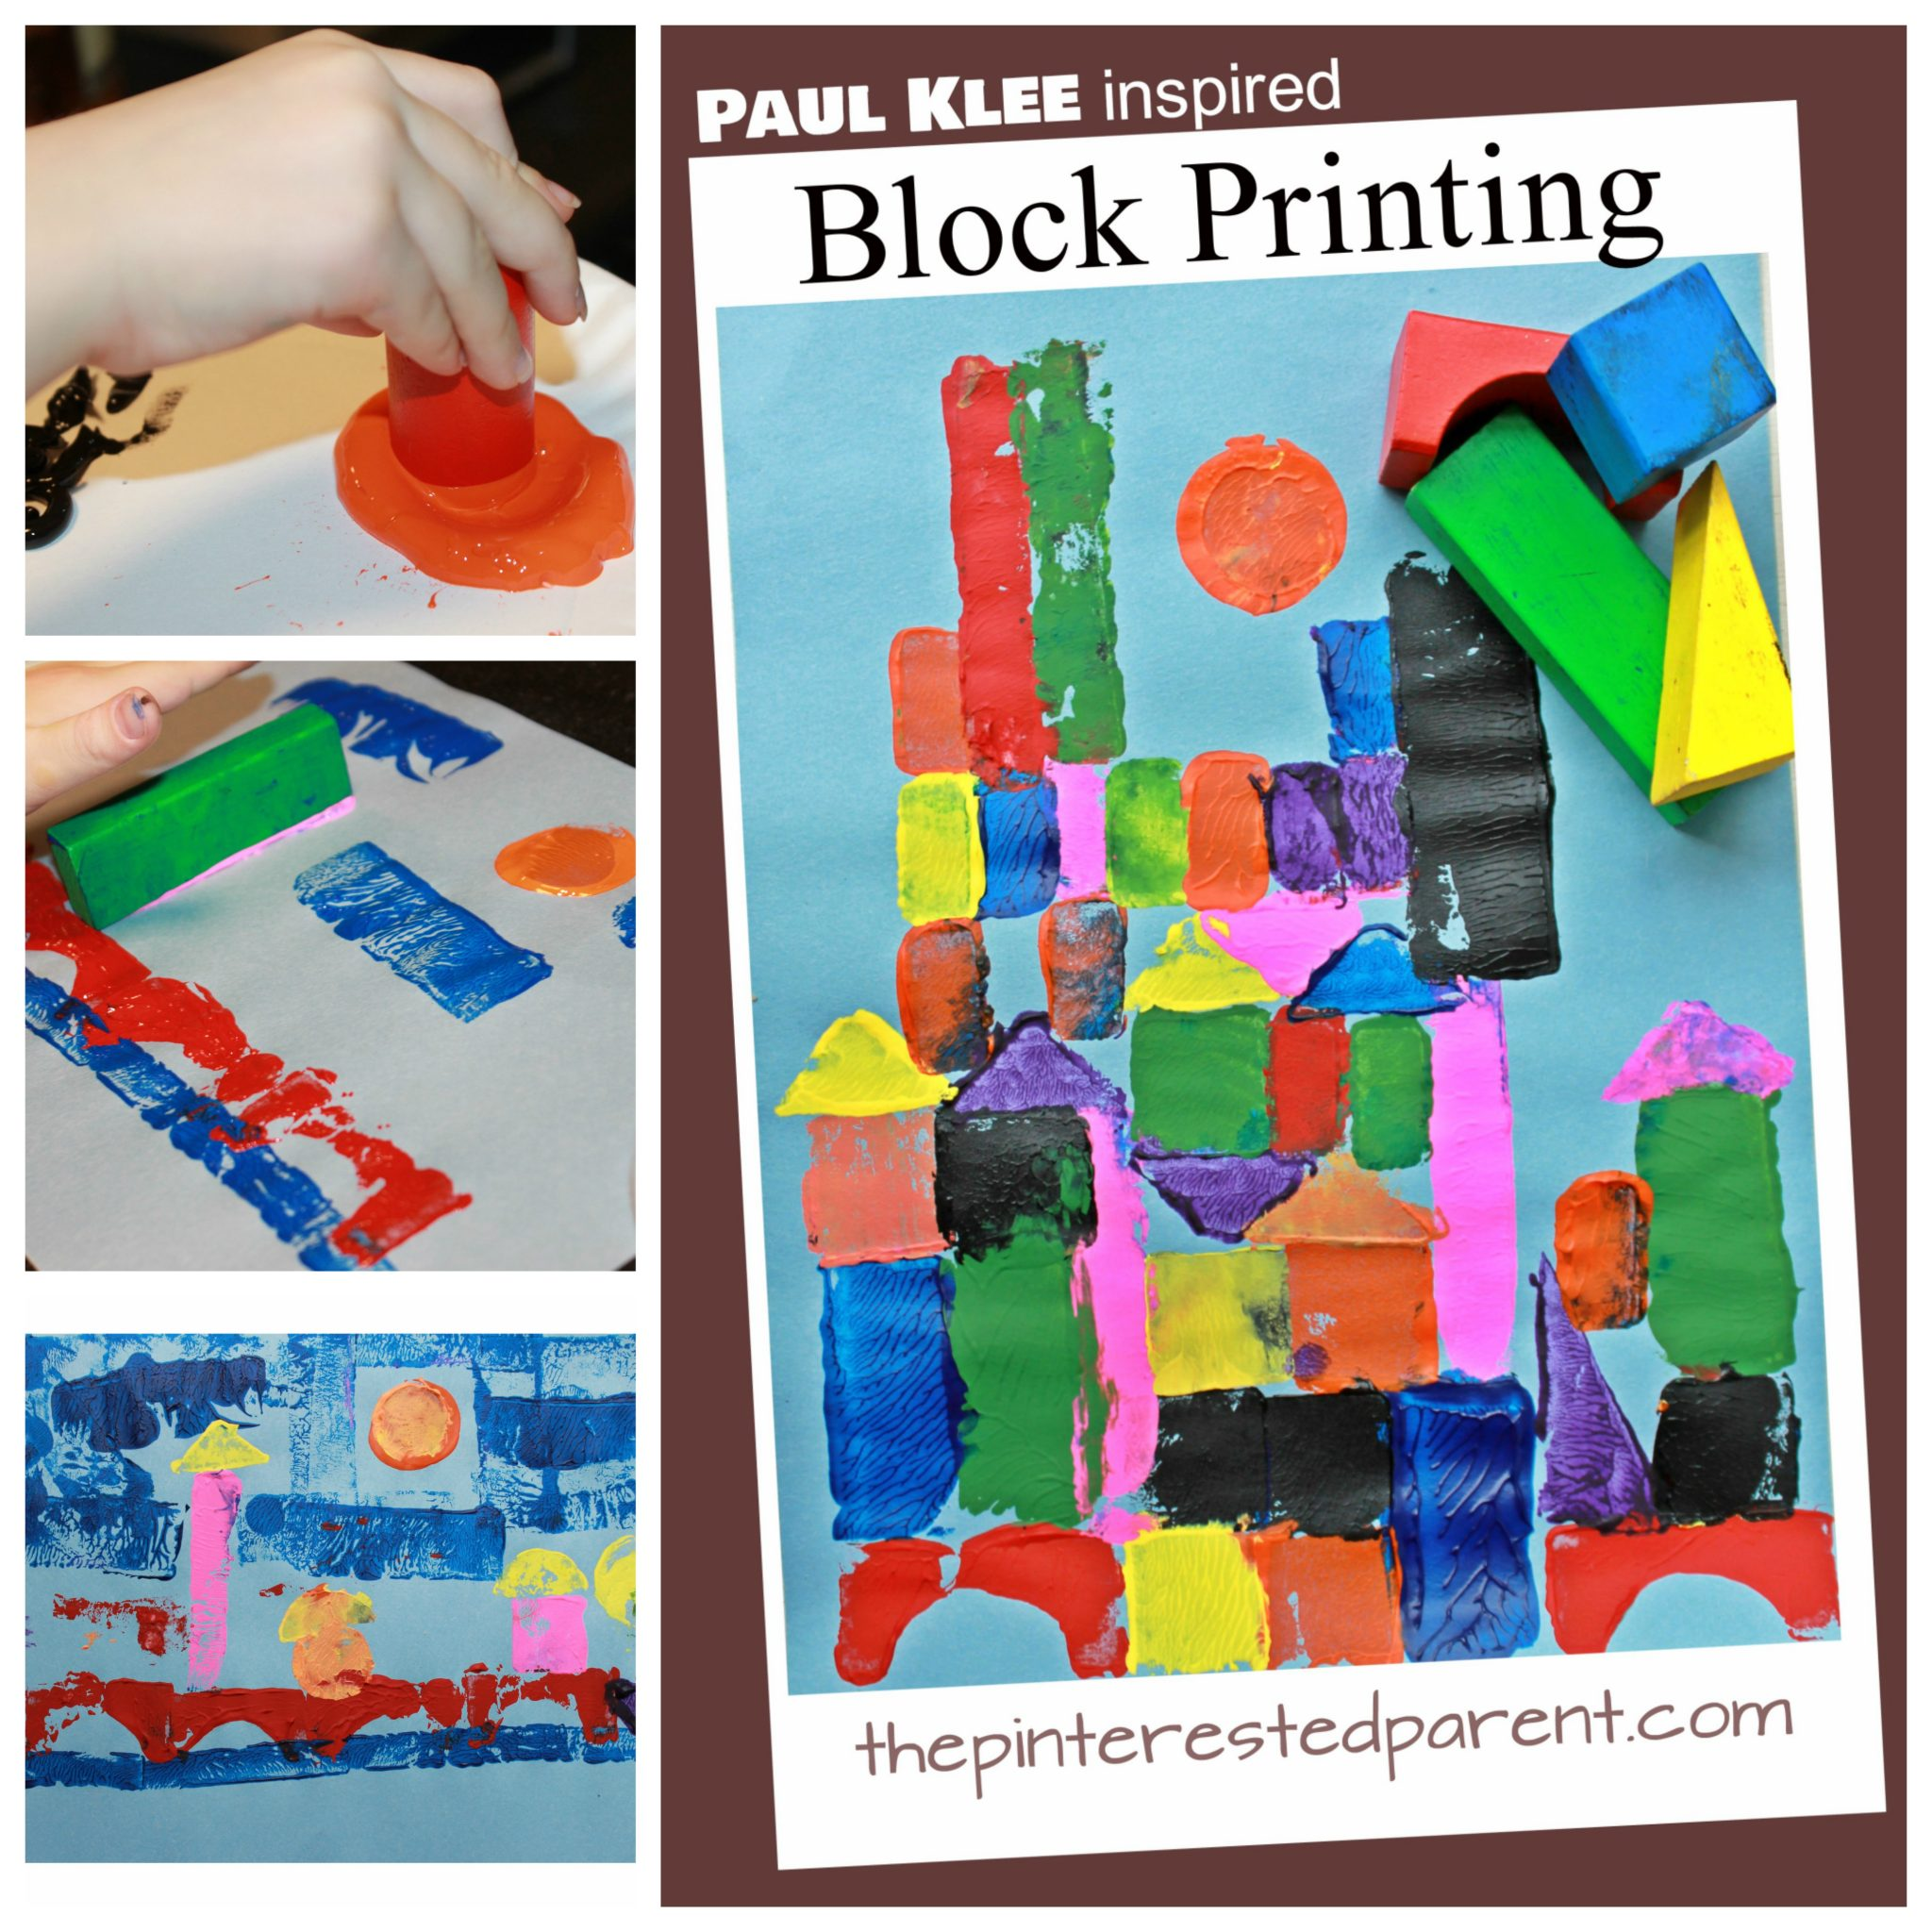 Paul Klee Inspired Block Printing The Pinterested Parent